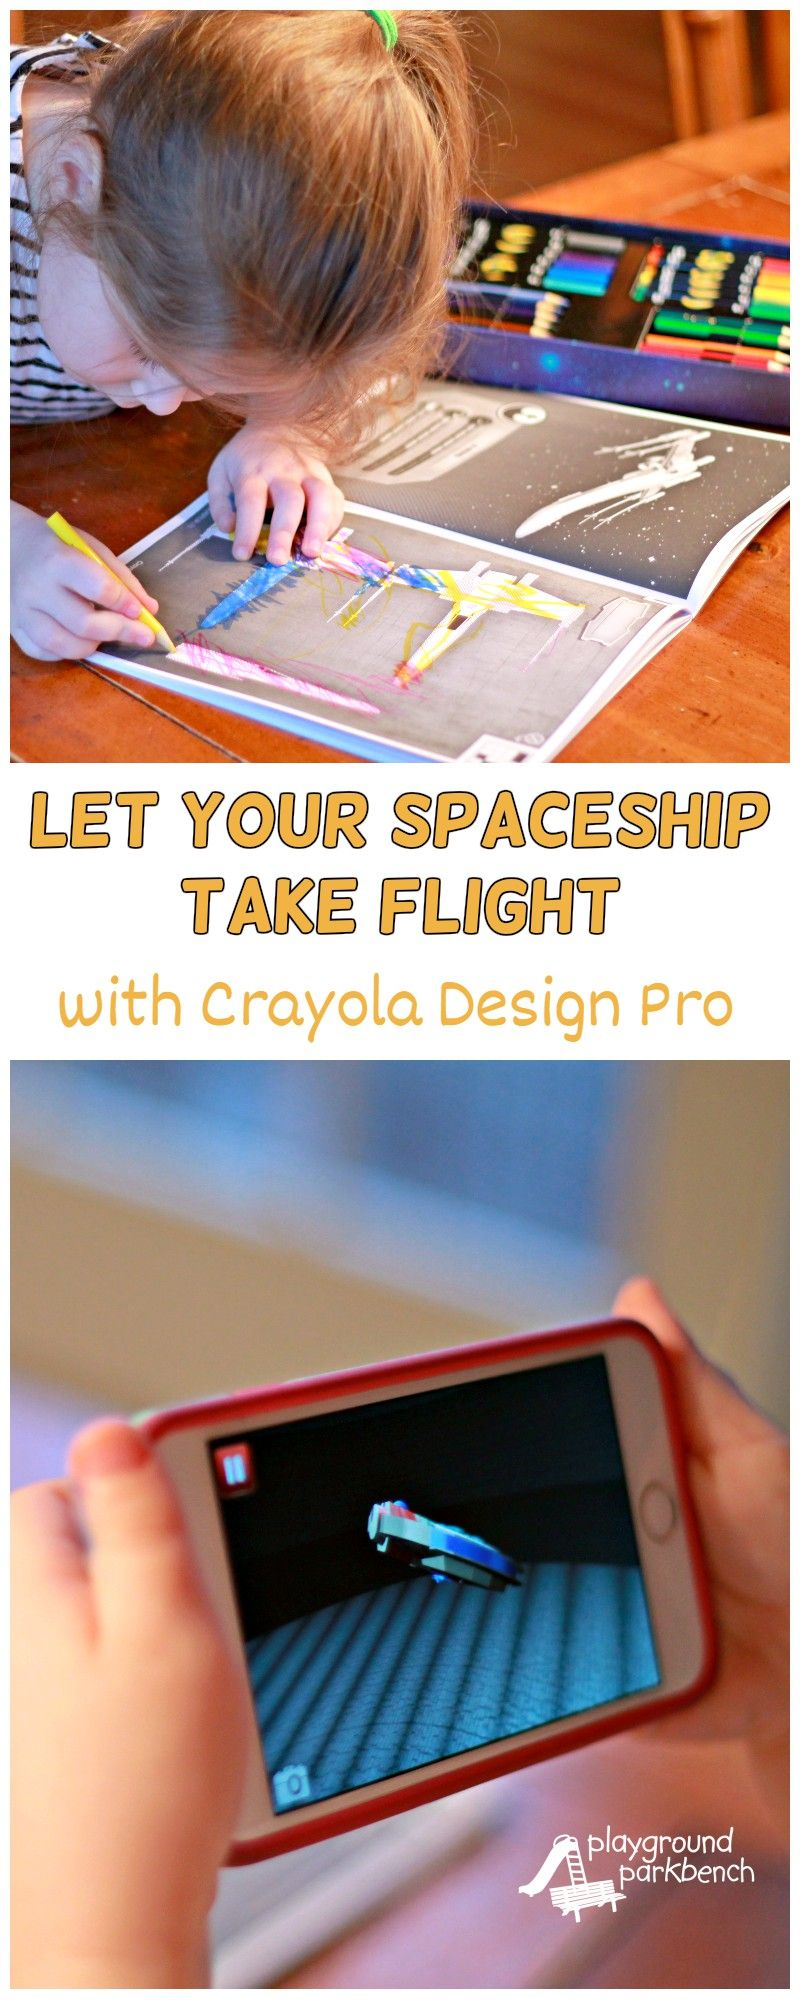 Let your preschooler experience the awesomeness of engineering with Crayola Alive Design Pro.  Let them design their own Star Wars spaceship and bring it to life right off the page to play and fly with on missions!